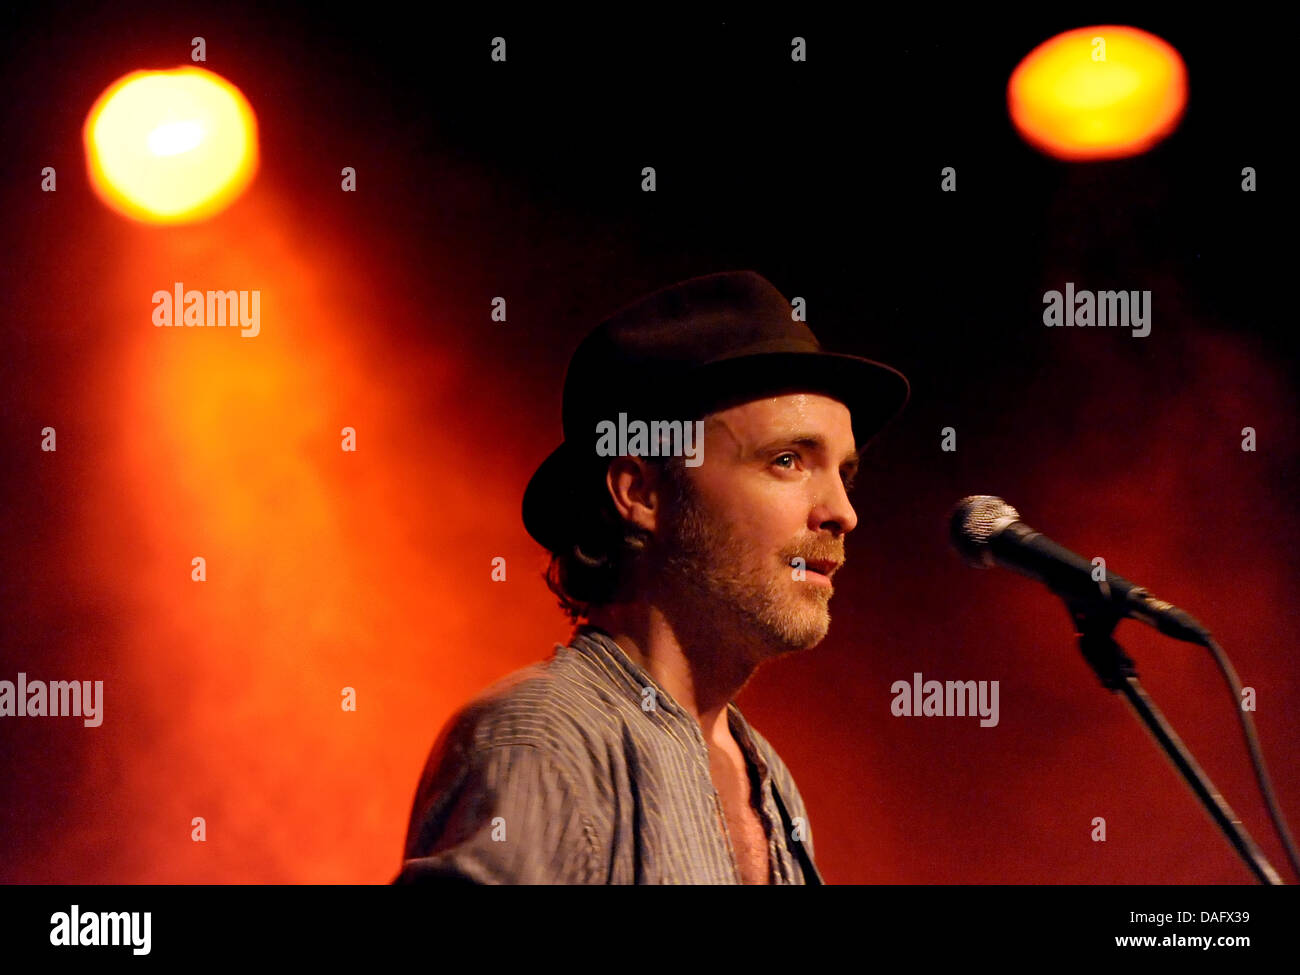 Fran Healy, singer of the Scottish band Travis, performs at